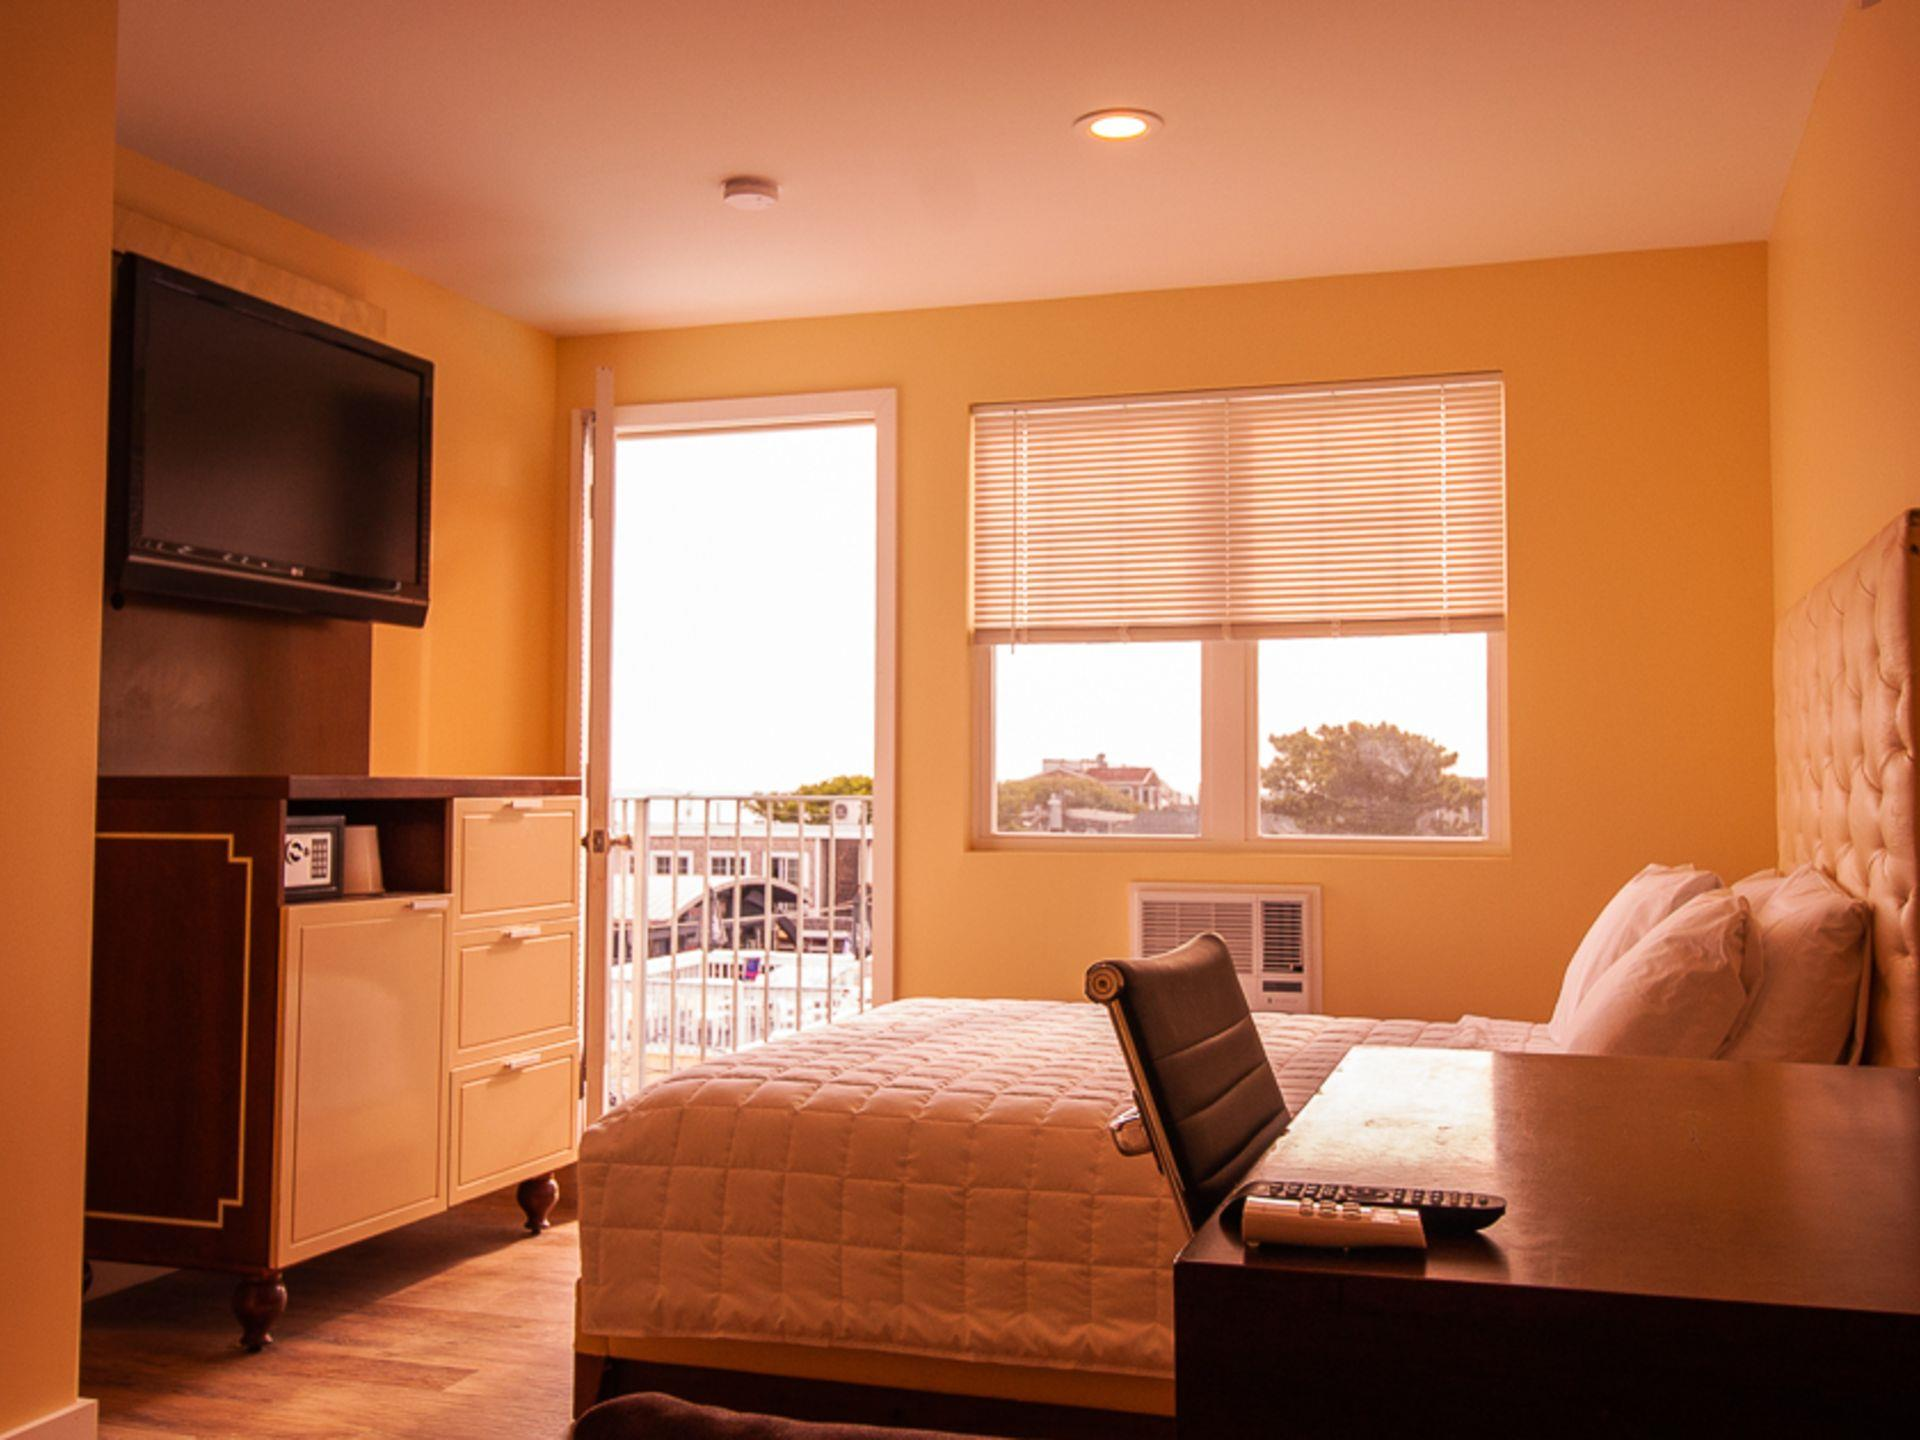 Standard room with a full size bed, desk and chair, a dresser and a tv on a wall with a door leading to a balcony